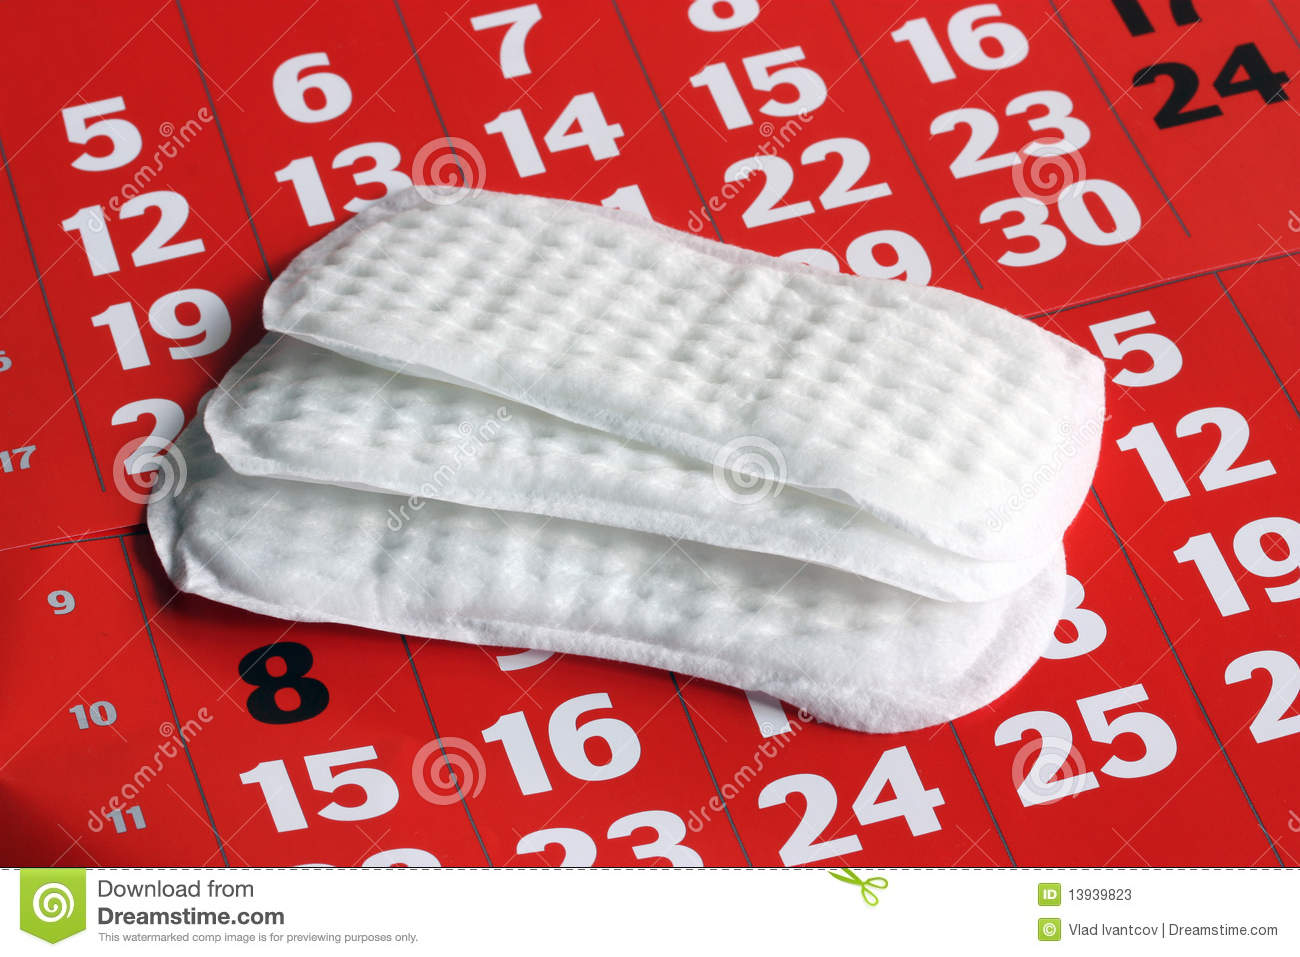 how to use sanitary pads images